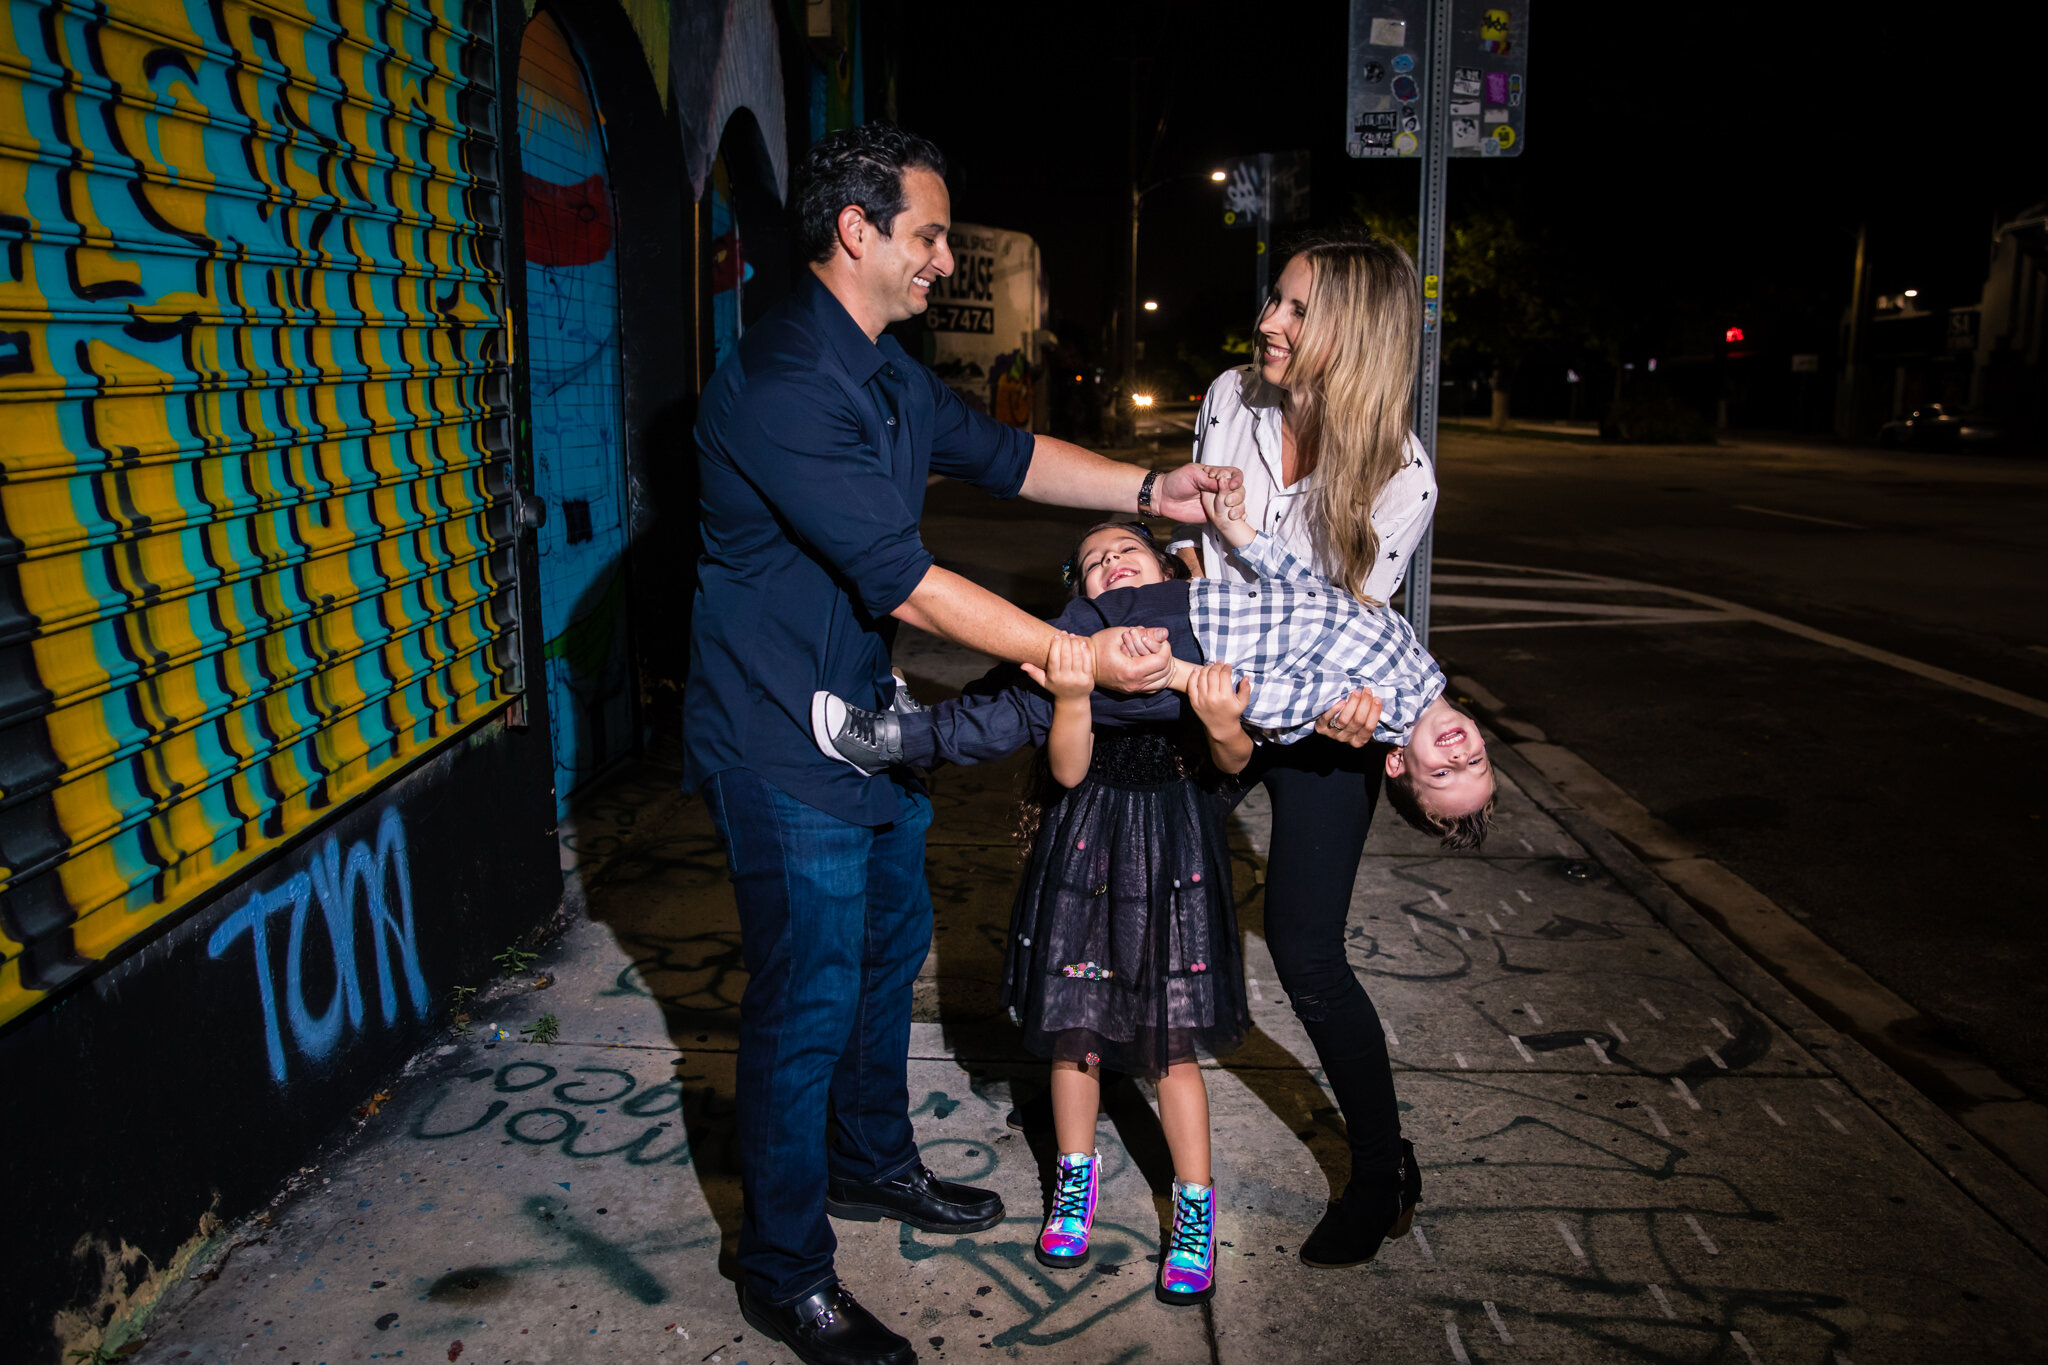 so-you-by-erica-sue-wynwood-miami-family-photo-session-night-flash-photography-0866.JPG